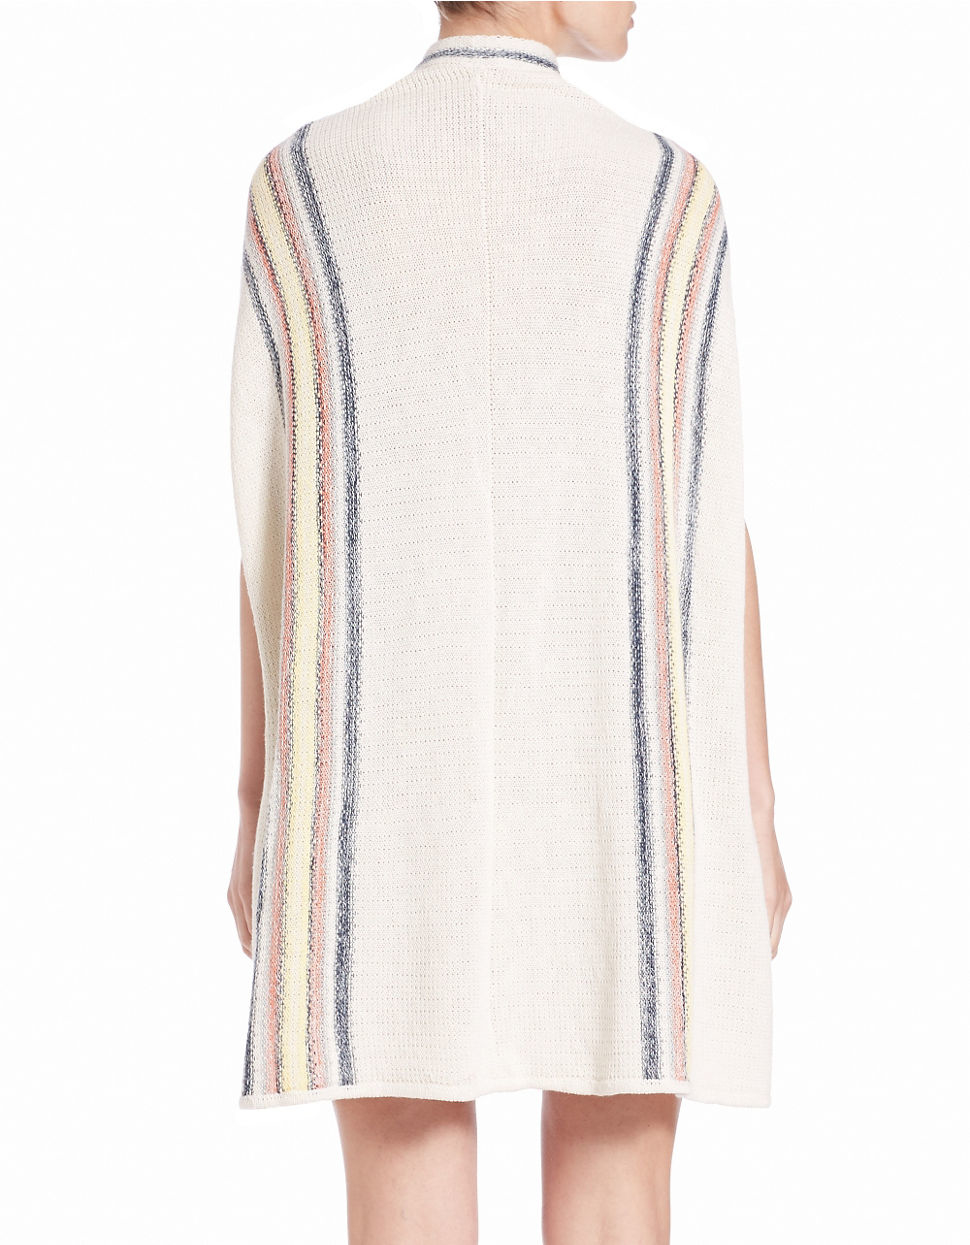 db66cb5532 Free People Striped Poncho Sweater in White - Lyst